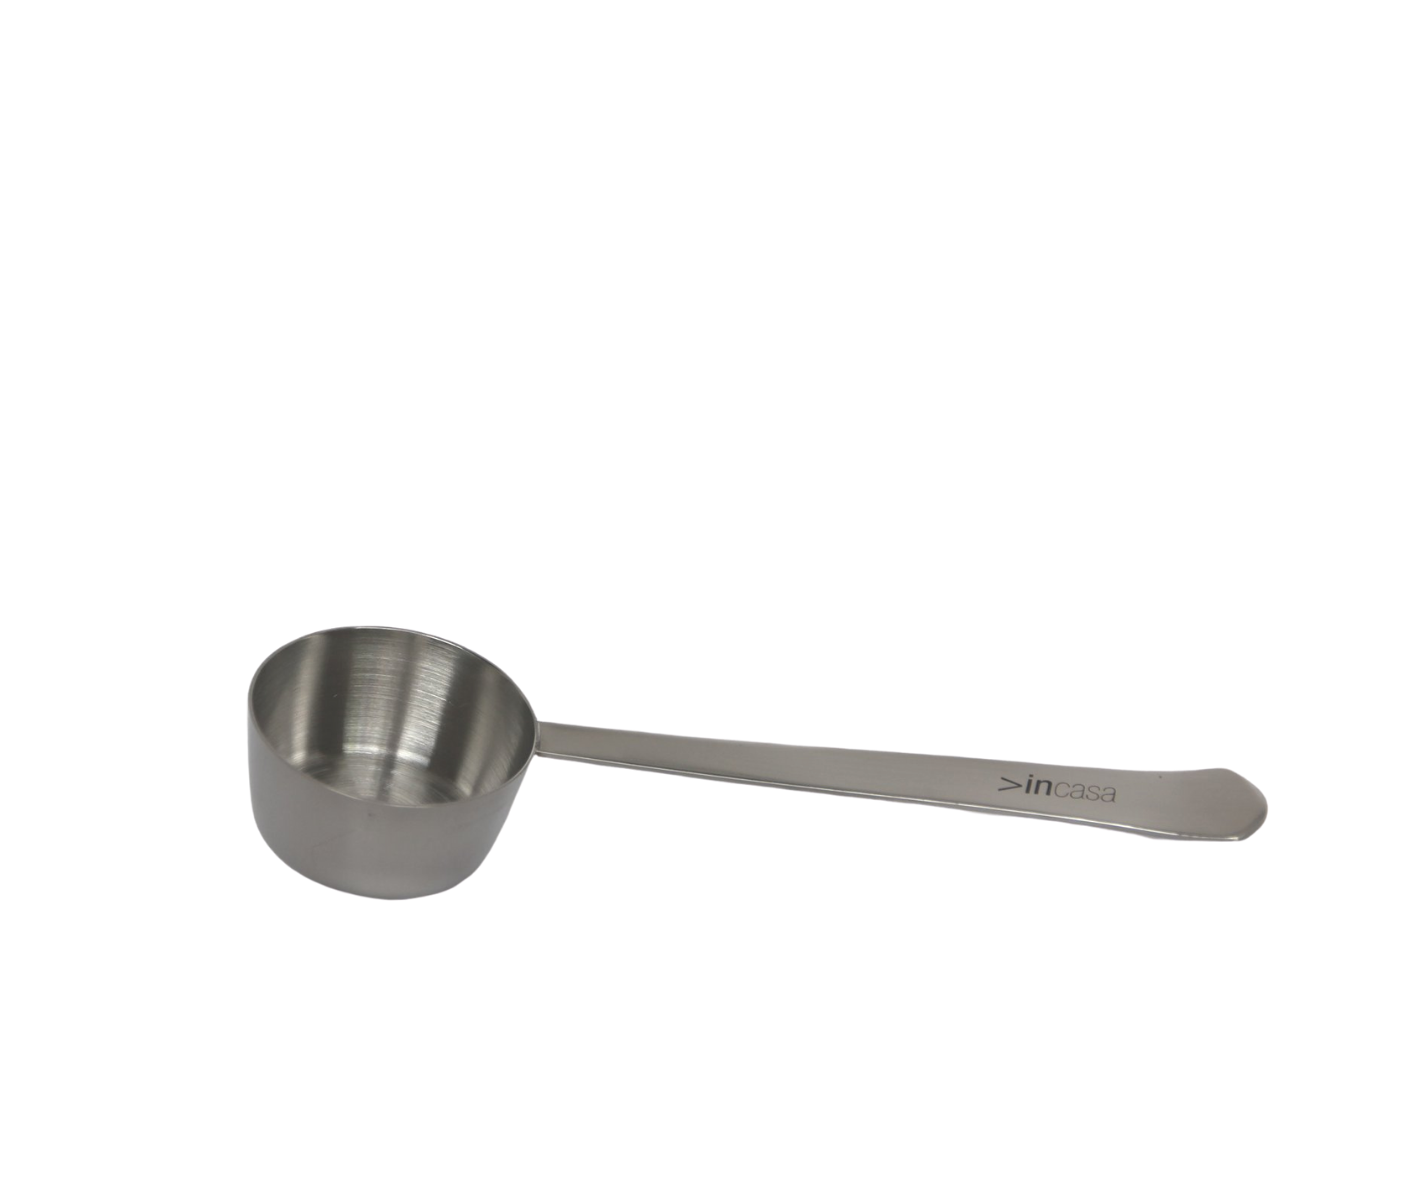 Coffee Spoon - Stainless Steel